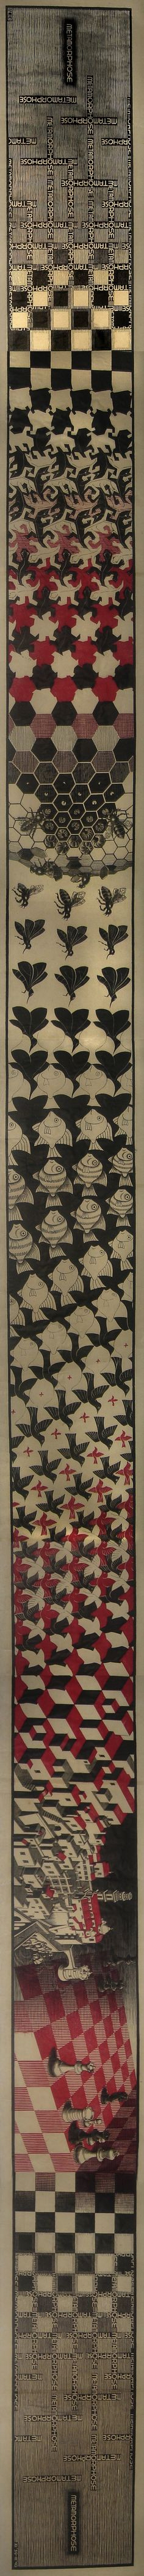 Metamorphosis II - M.C. Escher